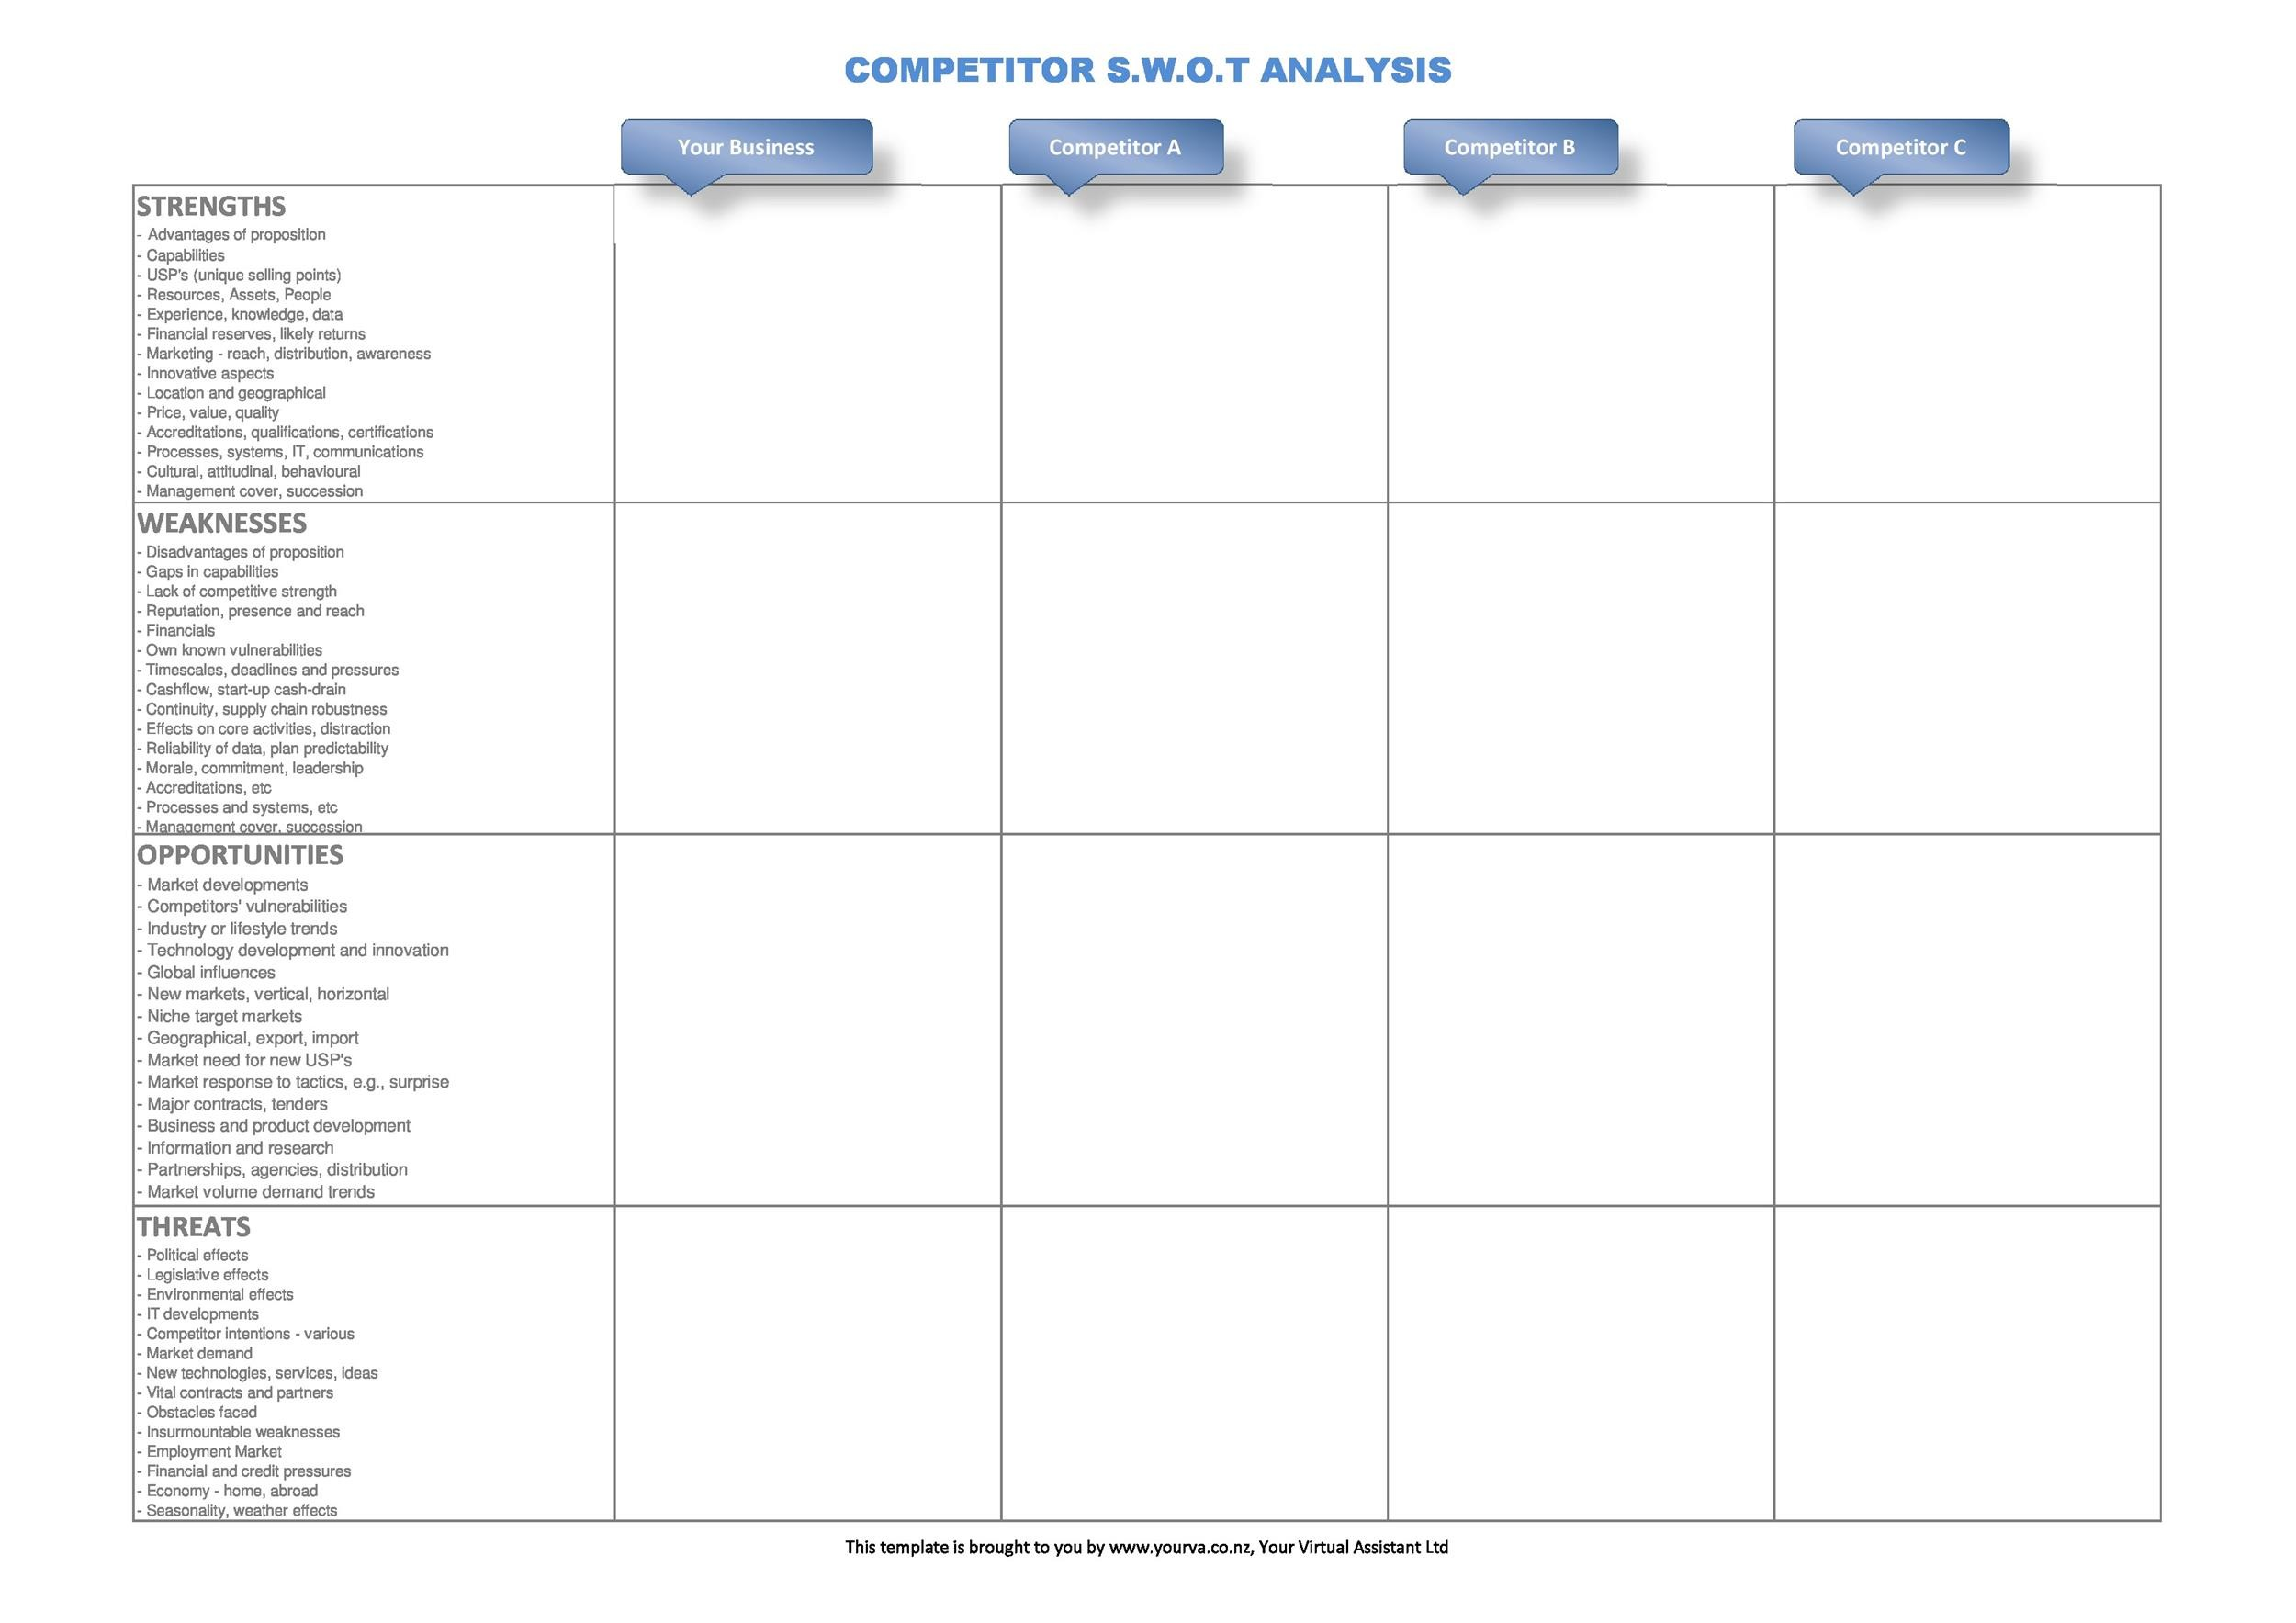 Competitive Analysis Templates - 40 Great Examples Excel, Word, PDF - competitor analysis report